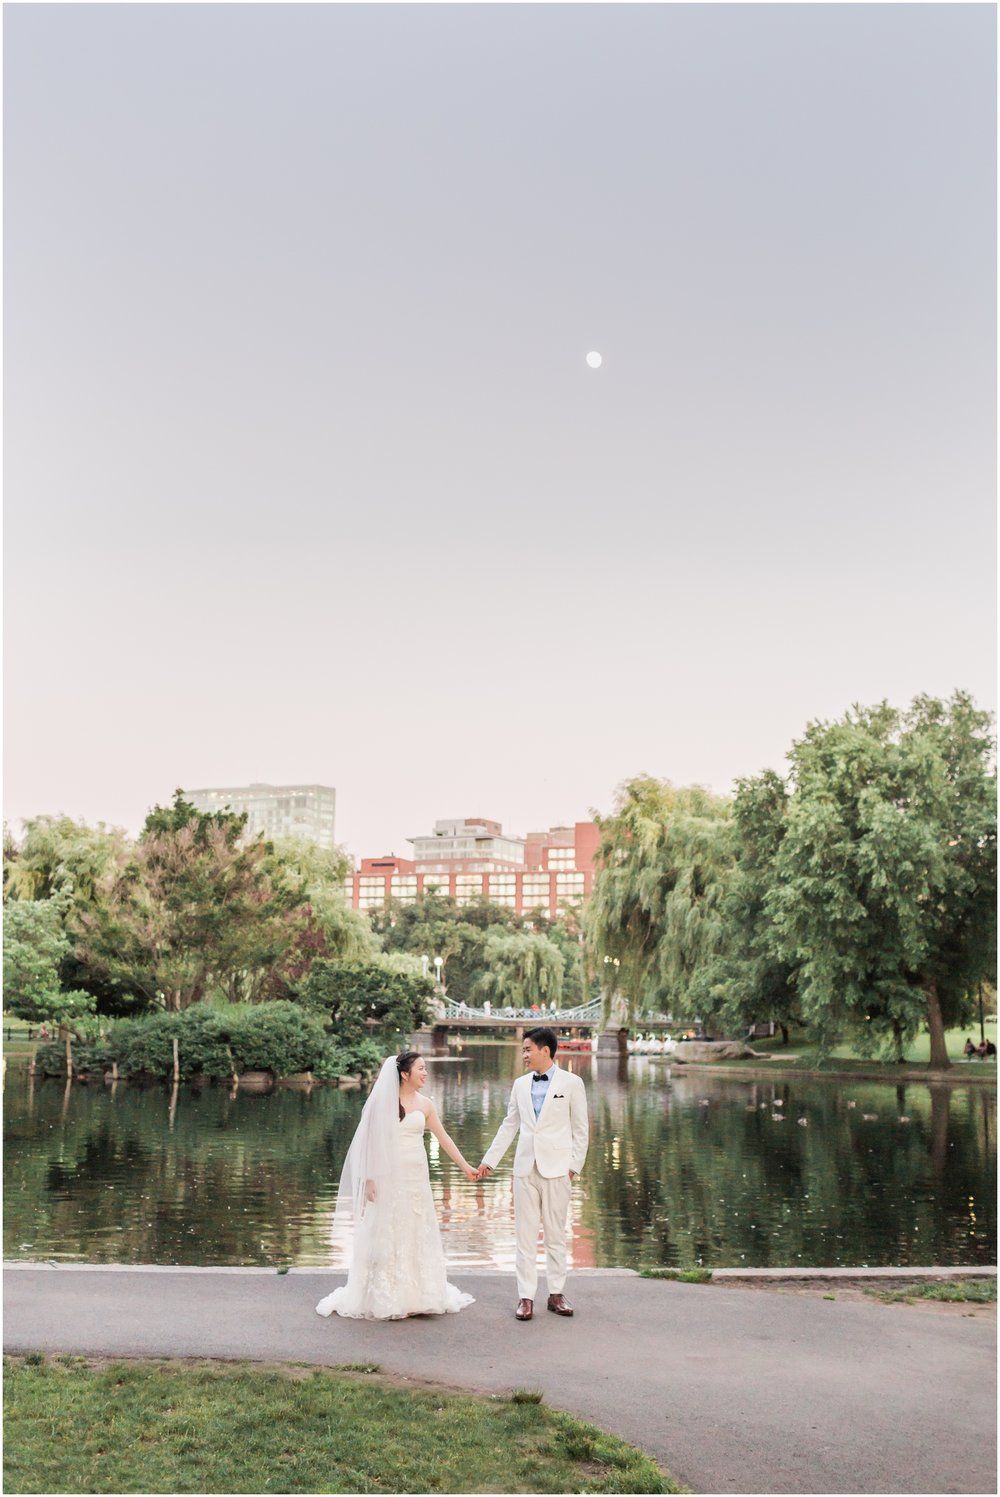 Boston Public Gardens Engagement Session // Boston Engagement Photographer